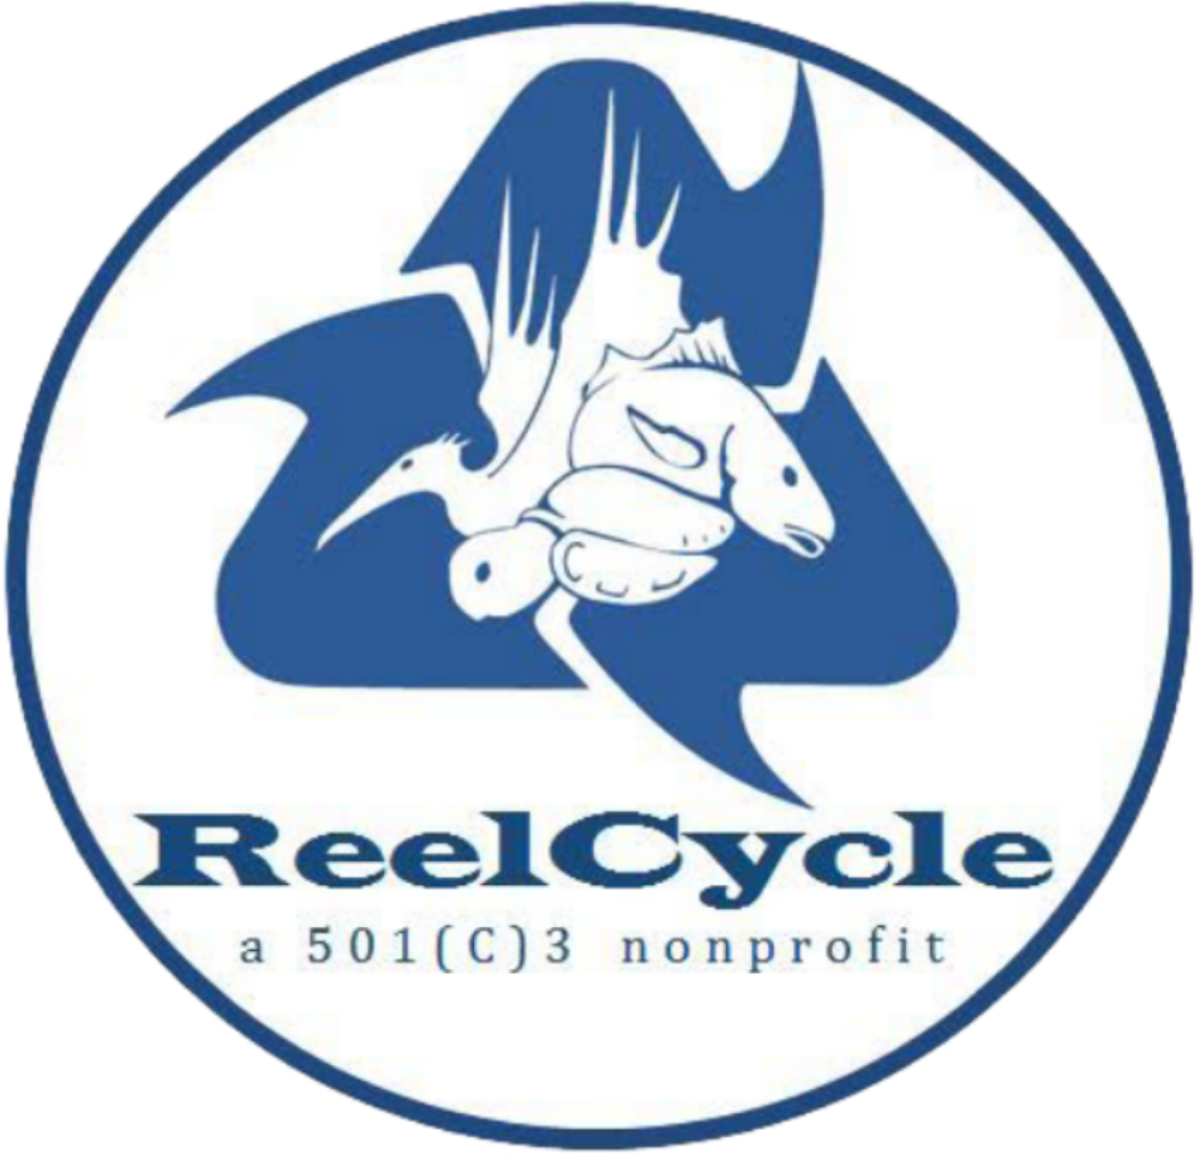 ReelCycle